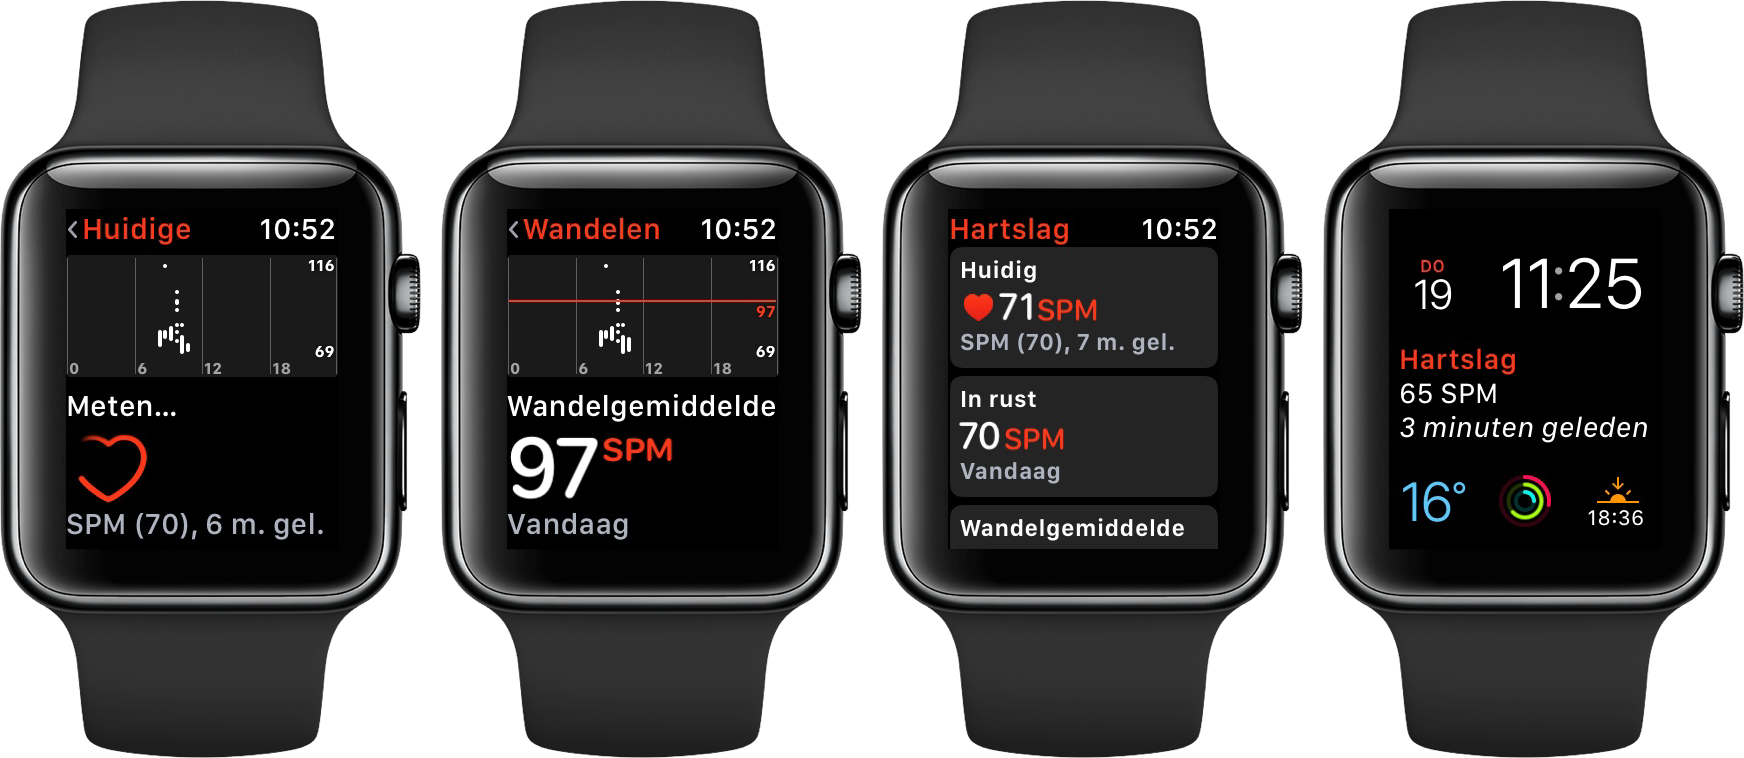 Hartslag app Apple Watch